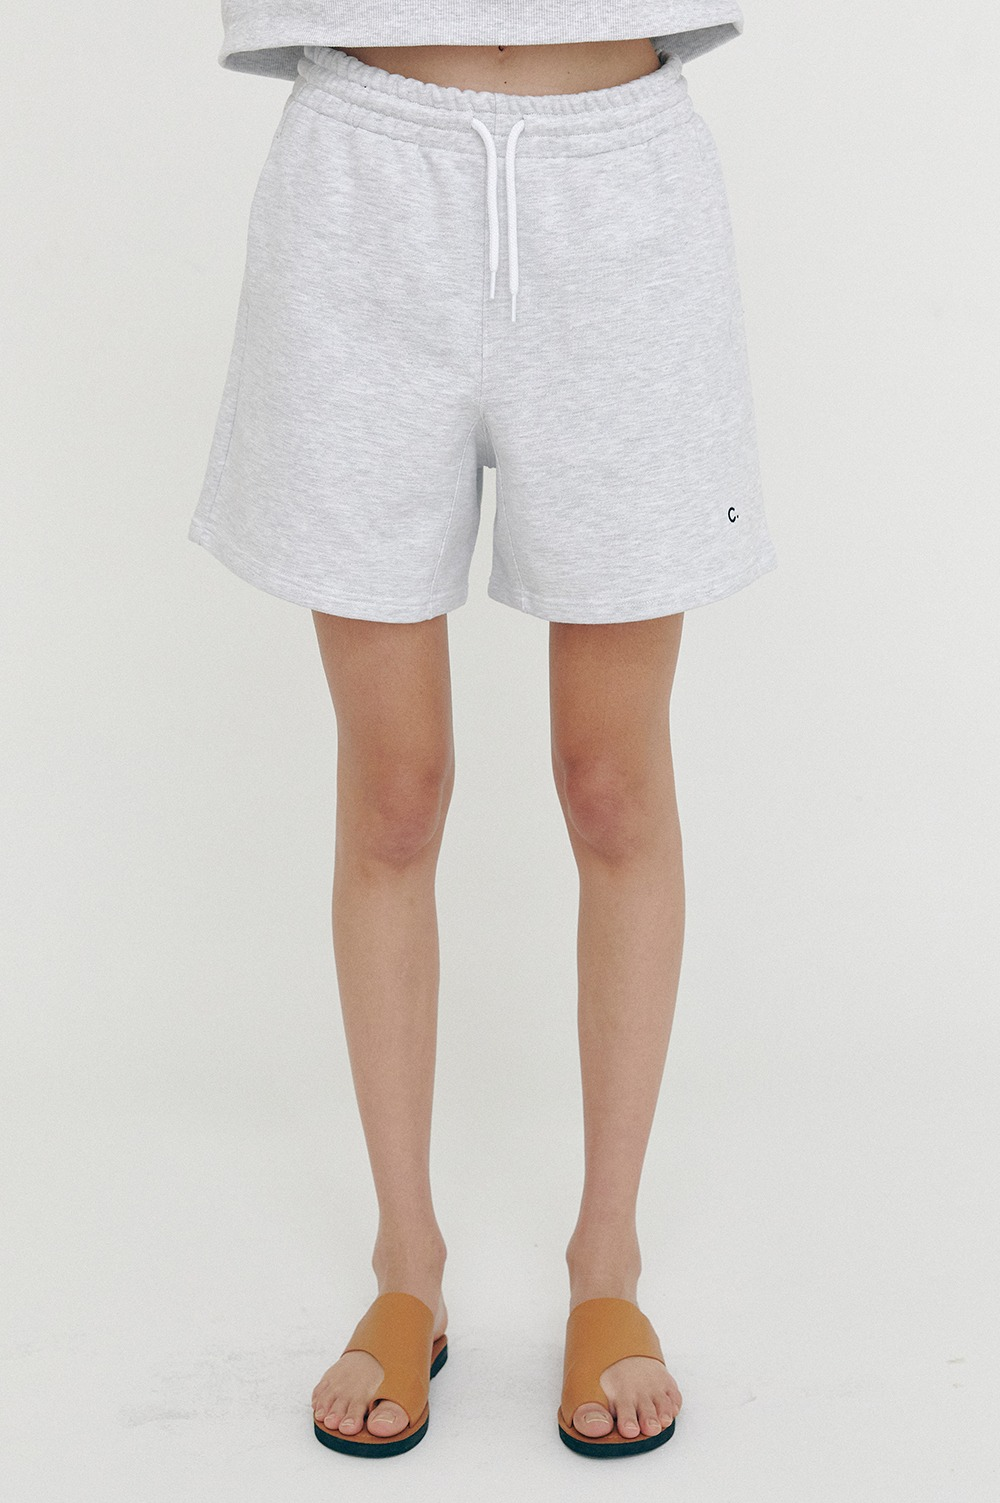 clove - [SS21 clove] Active Short Pants_Women Light Grey